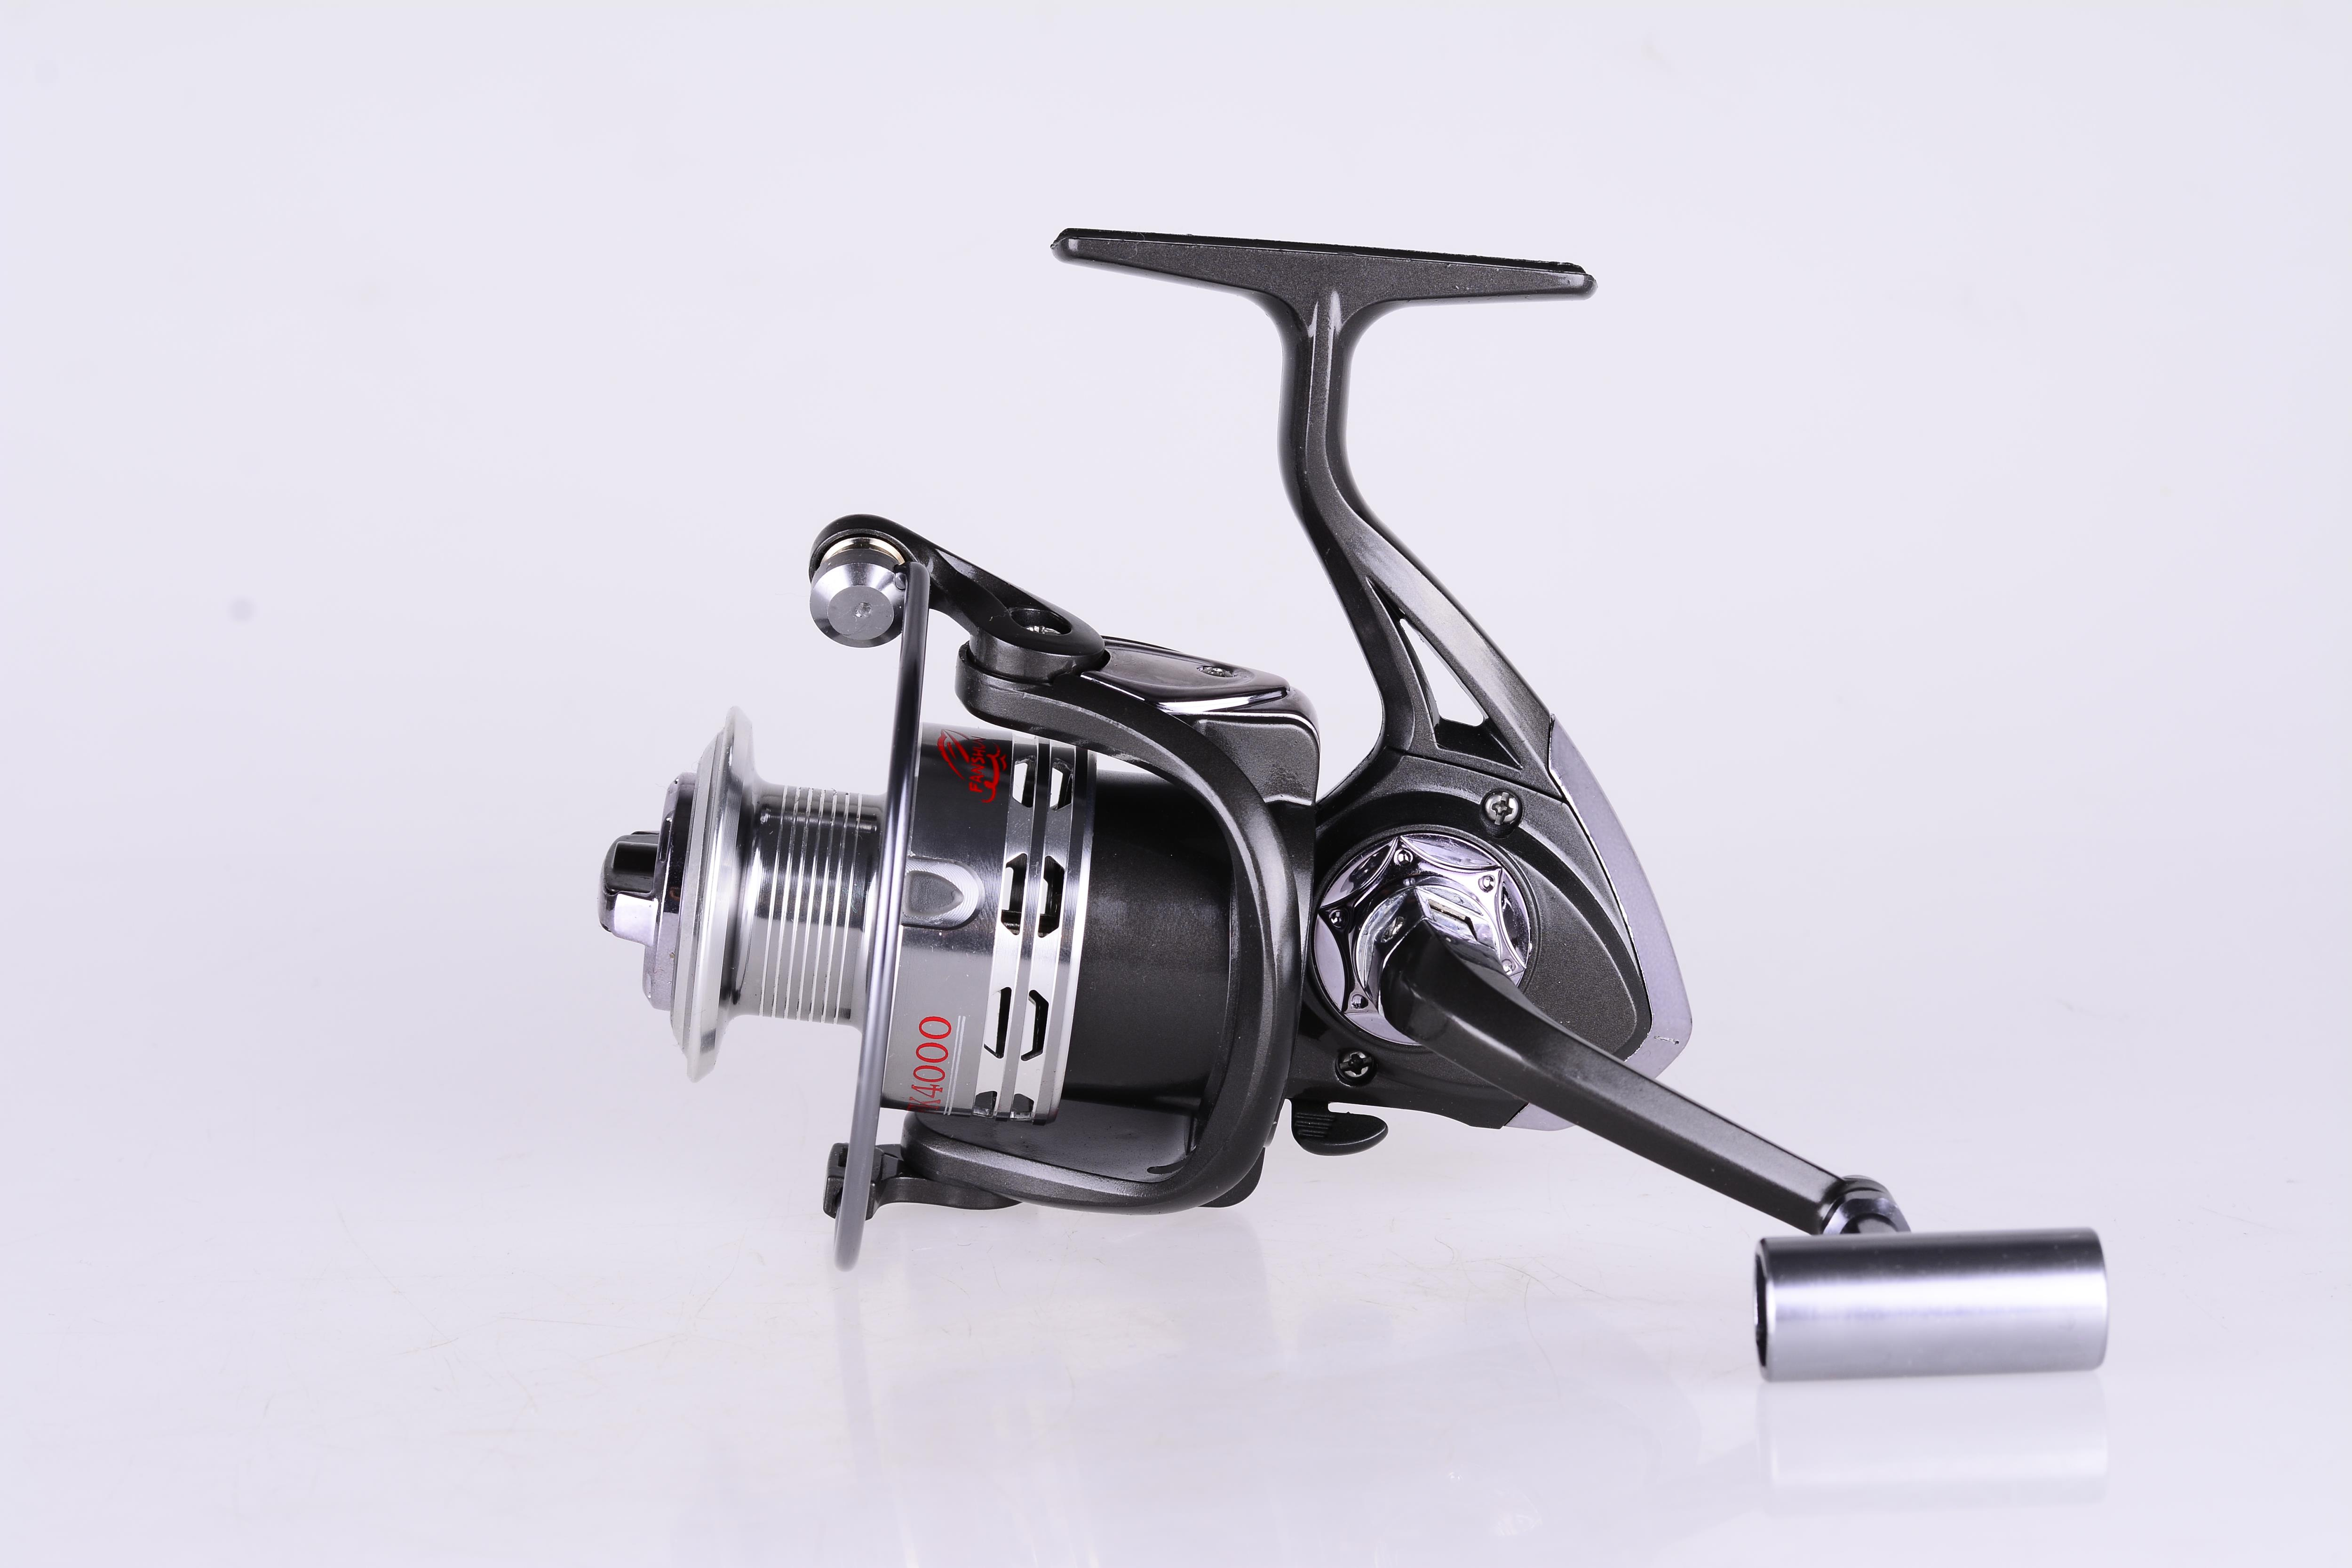 Top Grade Cheapest 14 Bearings FK1000-7000 Spinning Fishing Reel